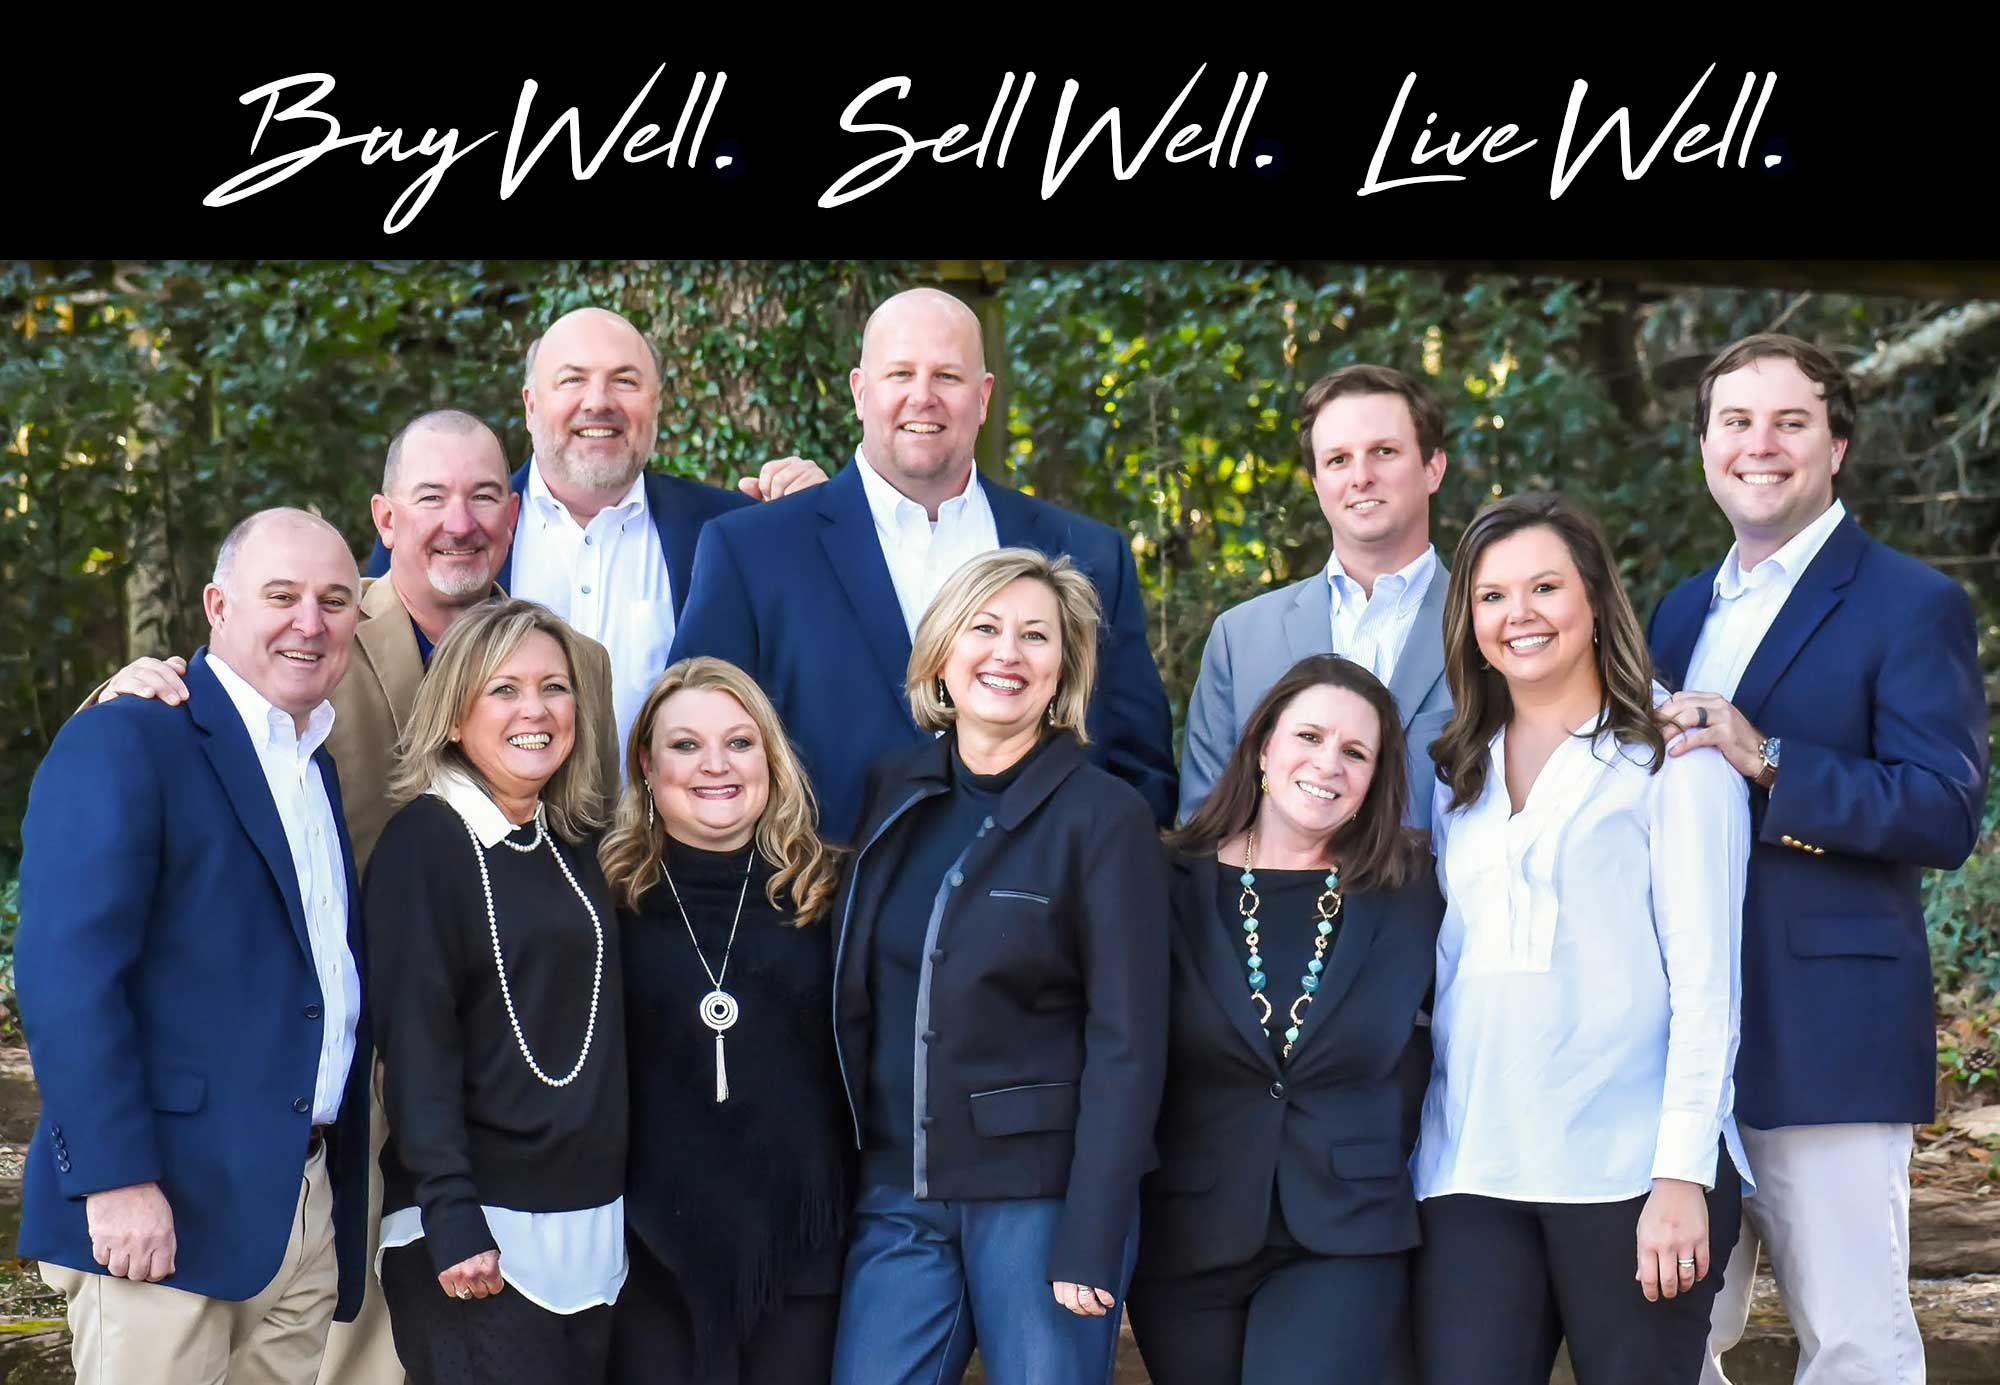 blackwell realty inc team picture